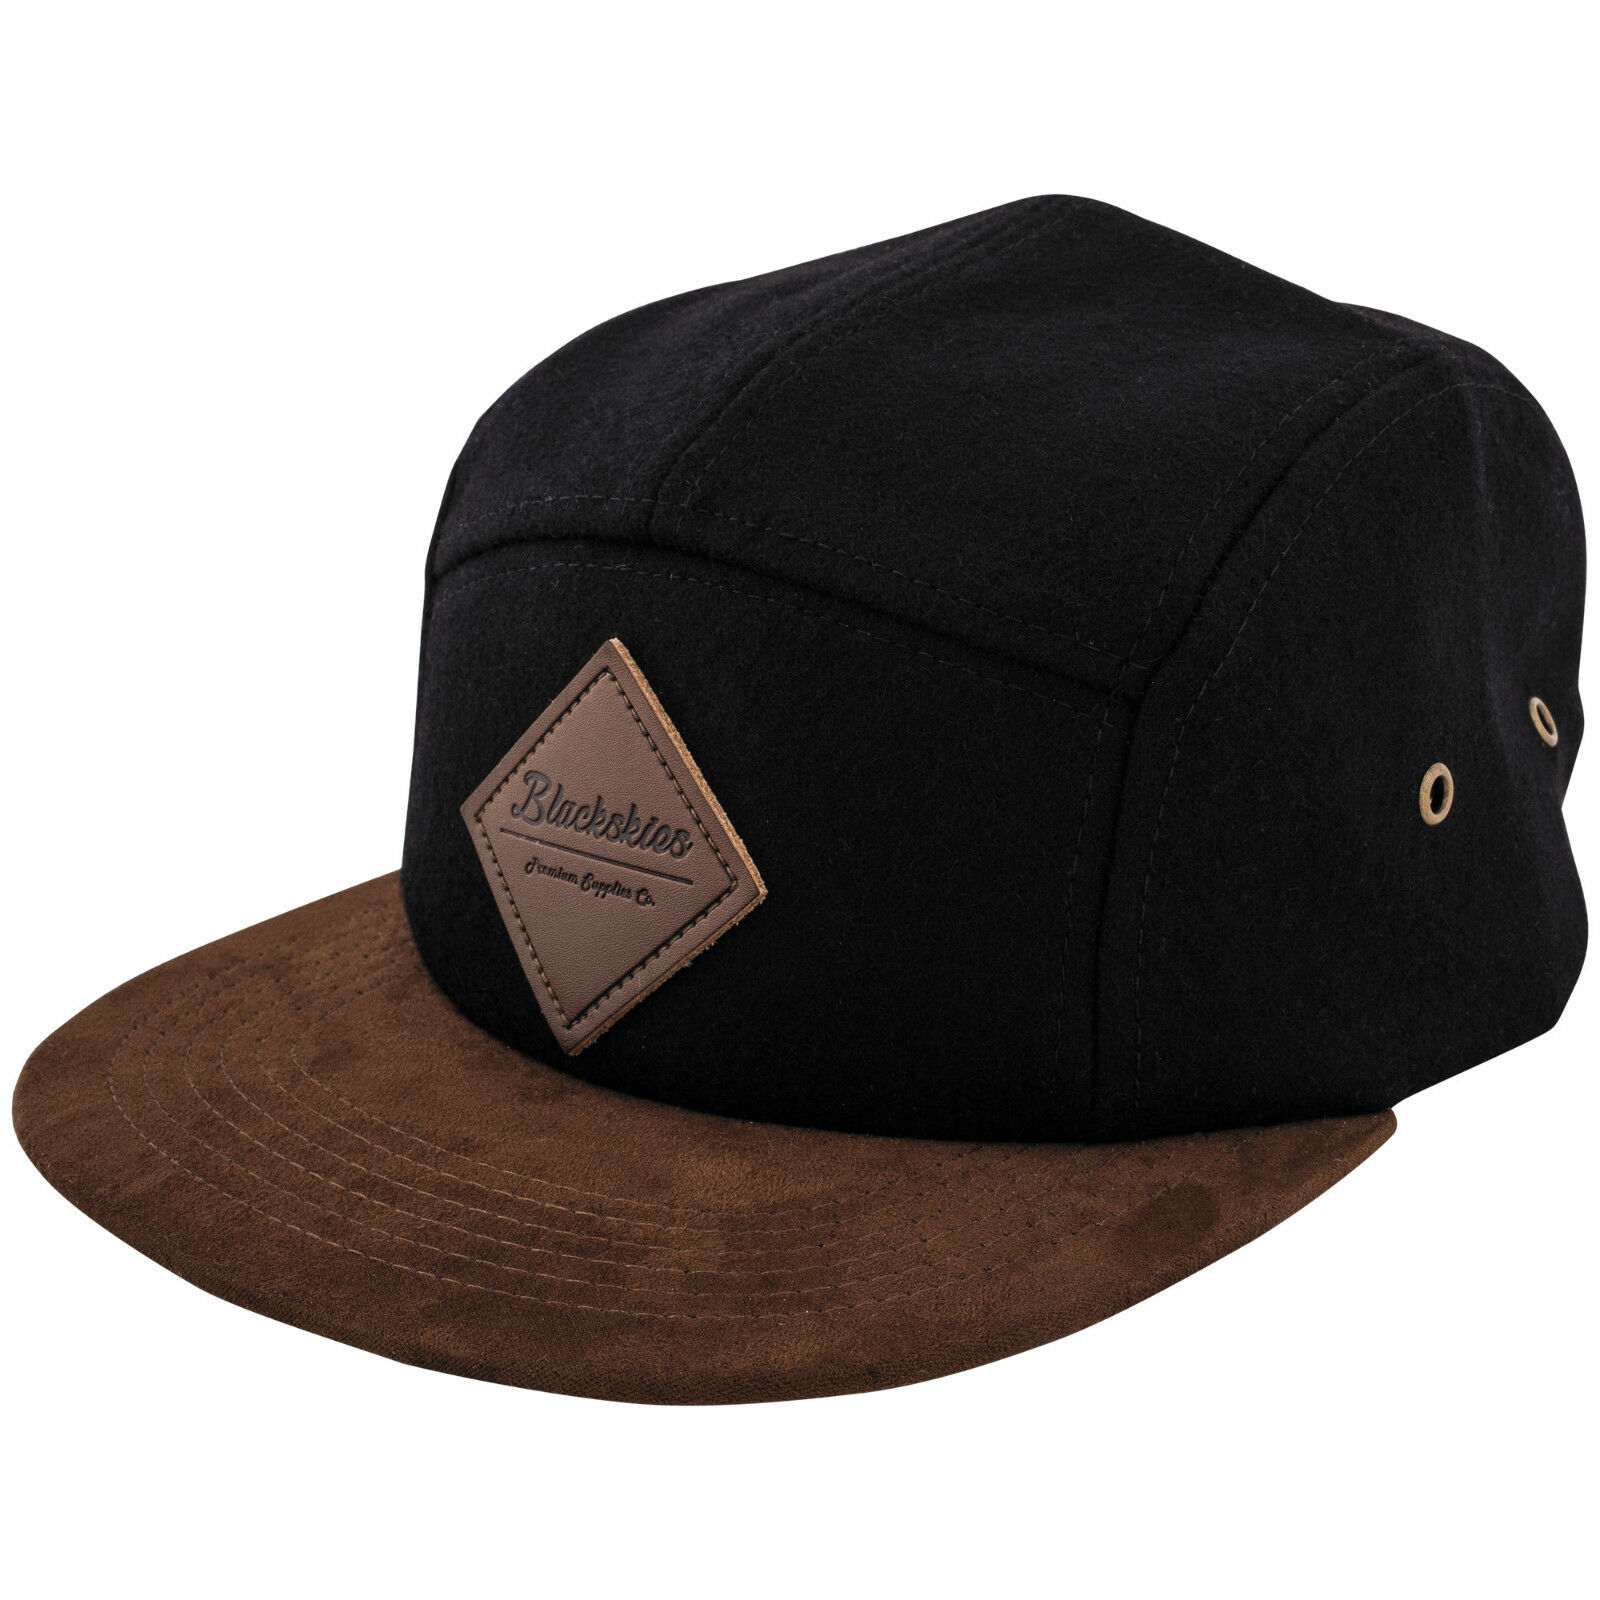 Blackskies Grounded 5-Panel Cap Anker Mütze Strapback Baseball ... 819c95991a